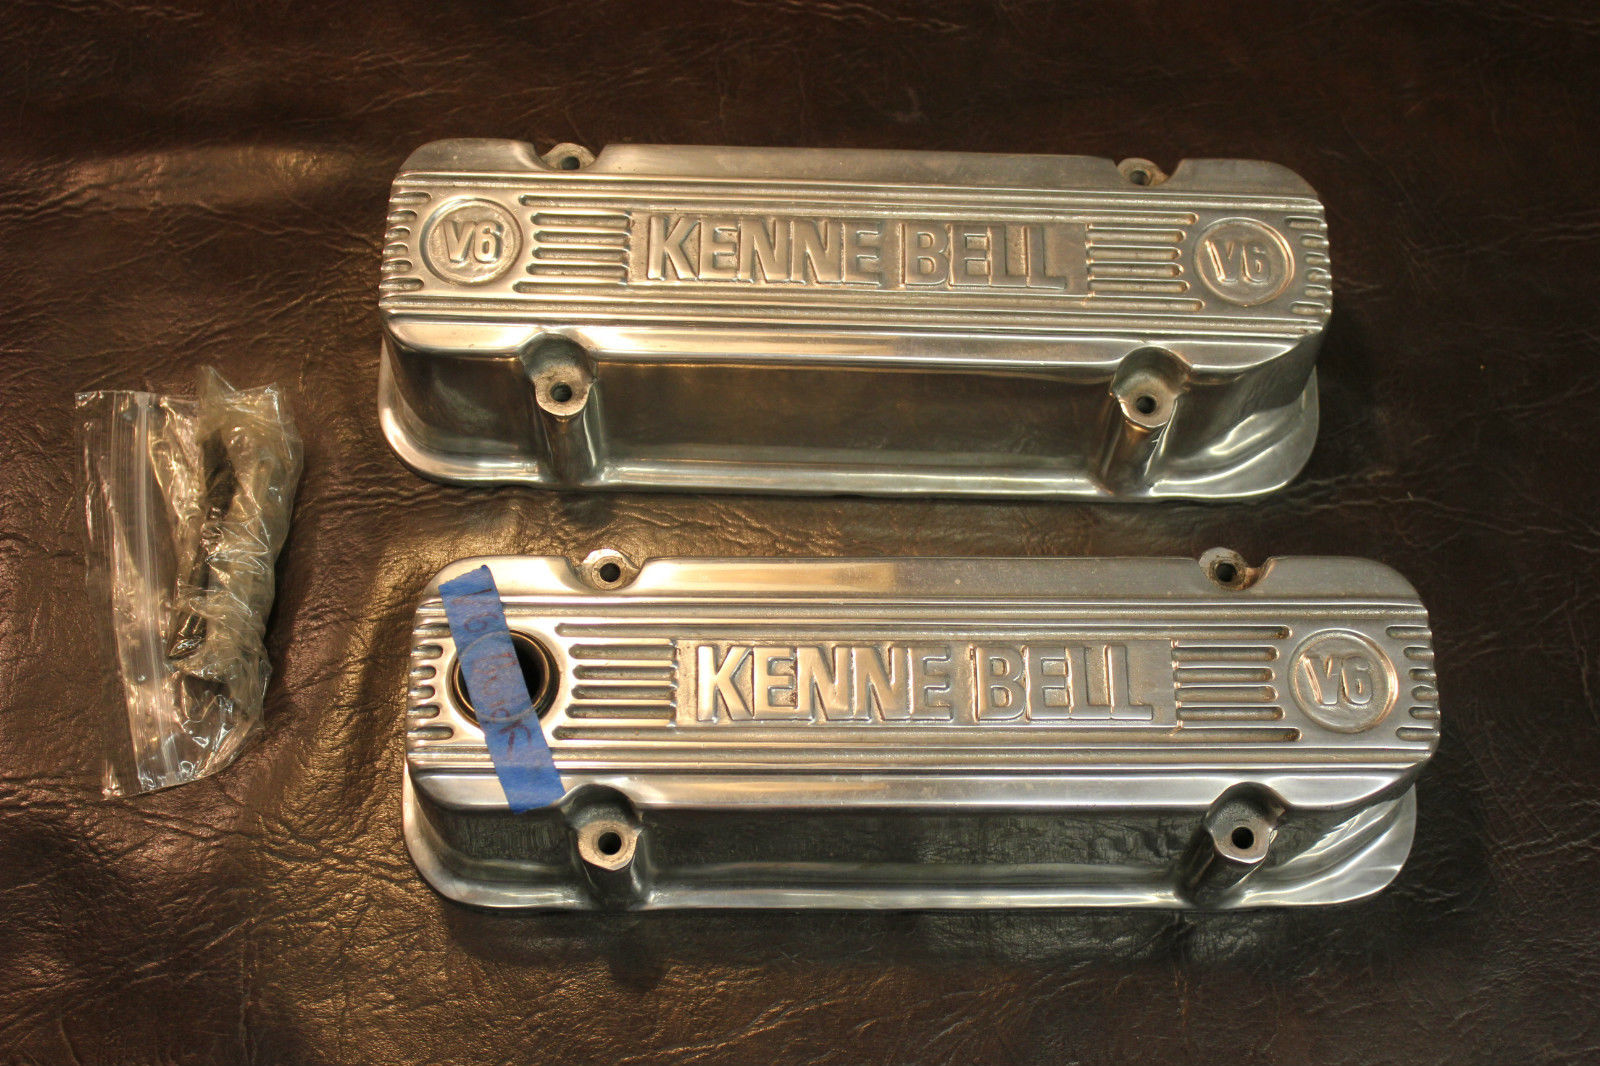 Kenne Bell Buick Parts – Billy Knight